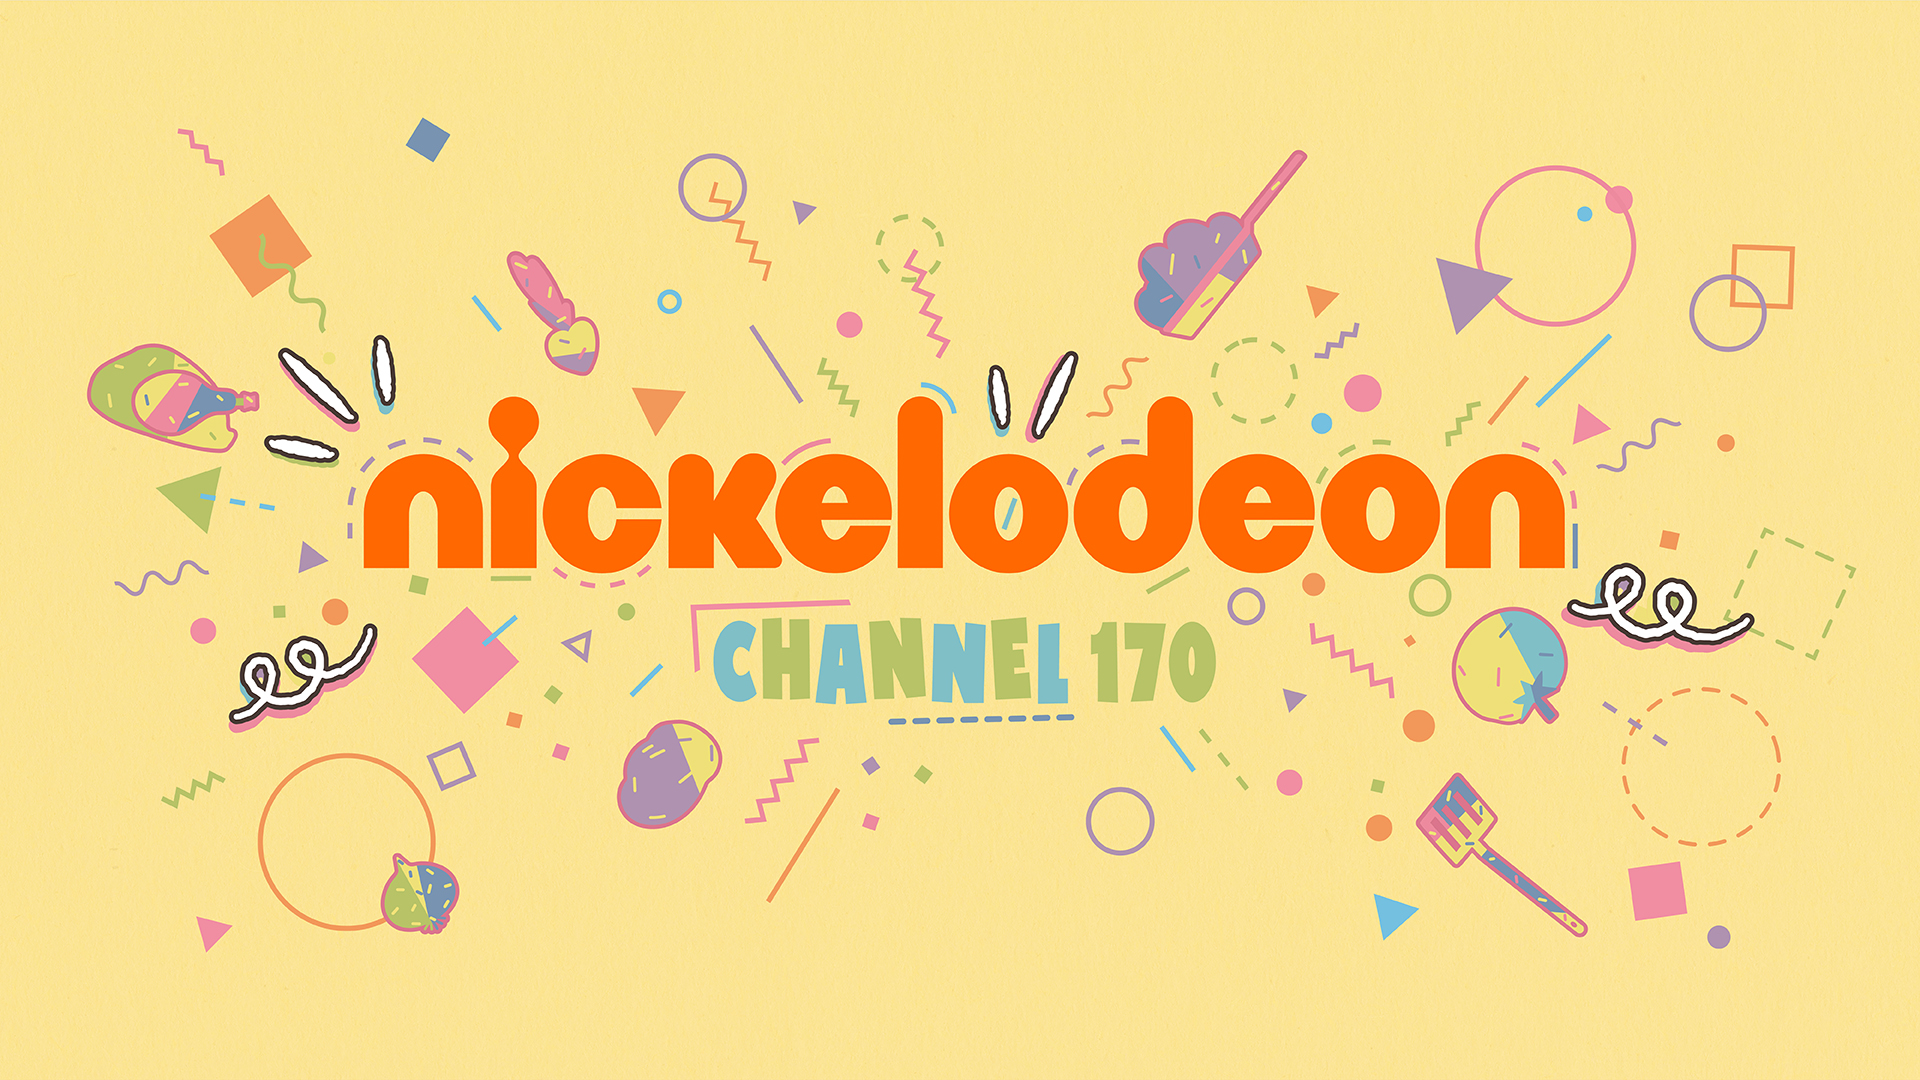 LH_COOKED_ALL_IN_ONE_06_RPG_Nickelodeon_1920.jpg